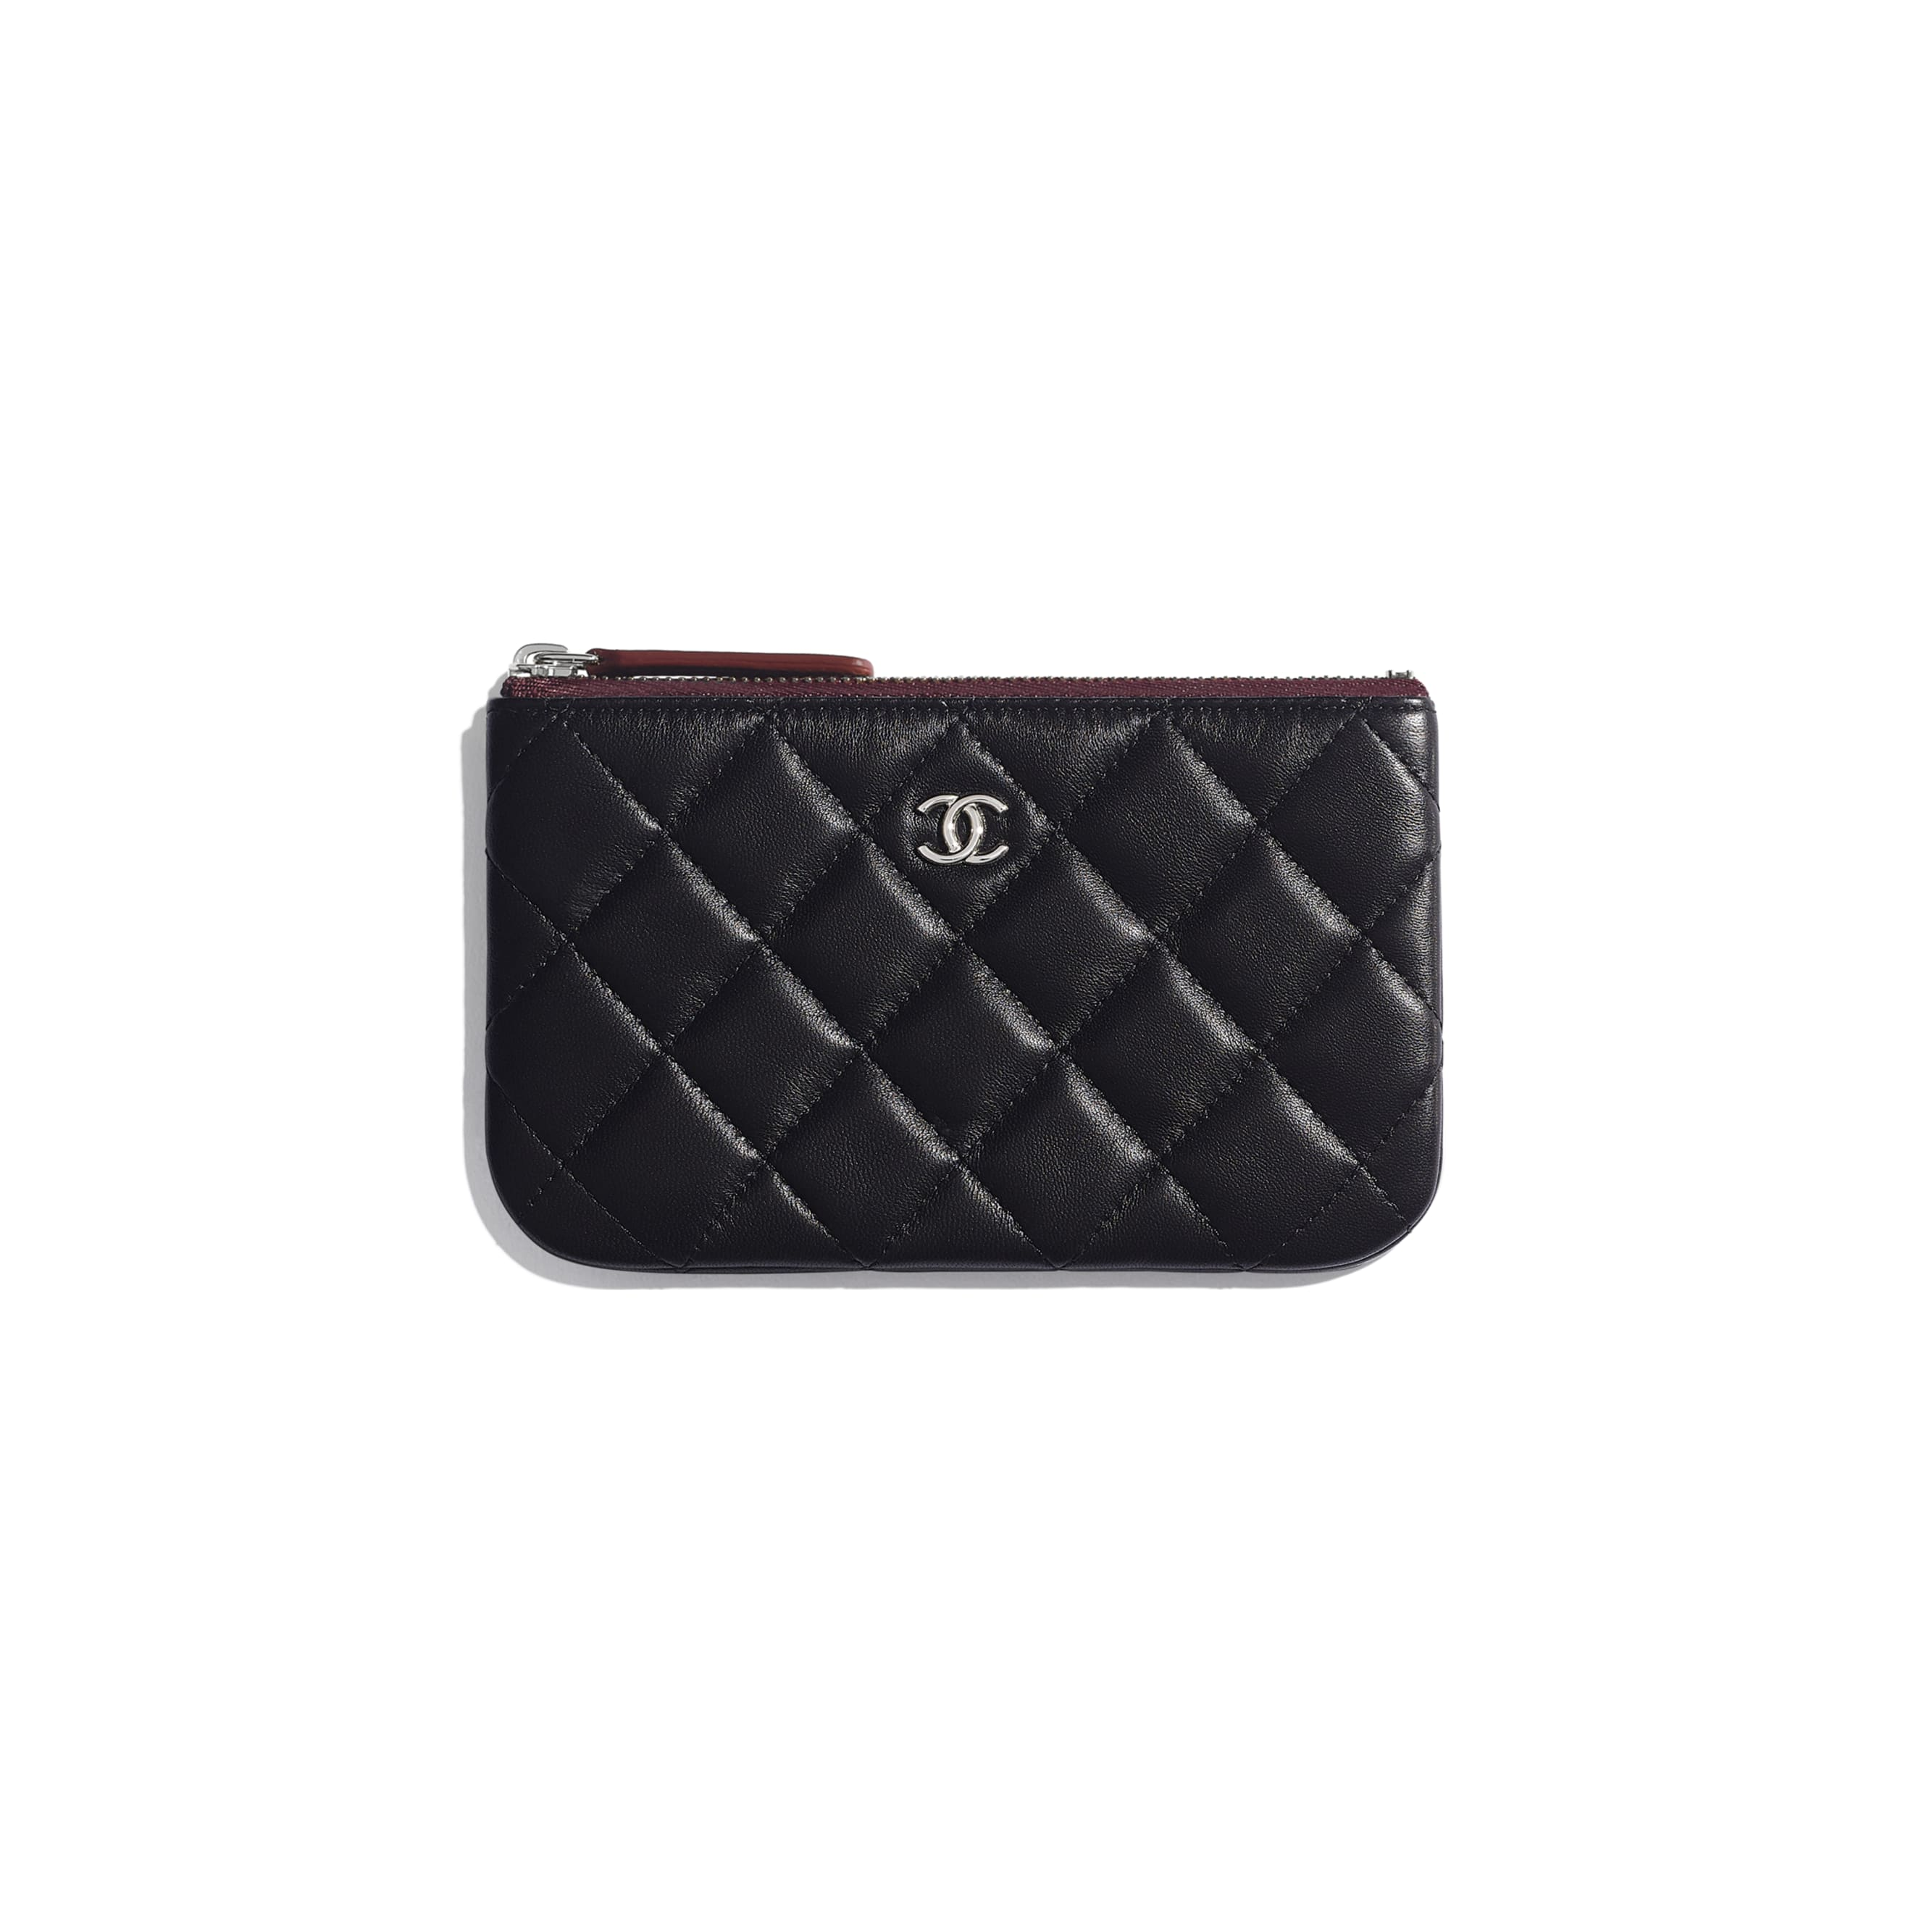 Classic Mini Pouch - Black - Lambskin & Silver-Tone Metal - CHANEL - Default view - see standard sized version